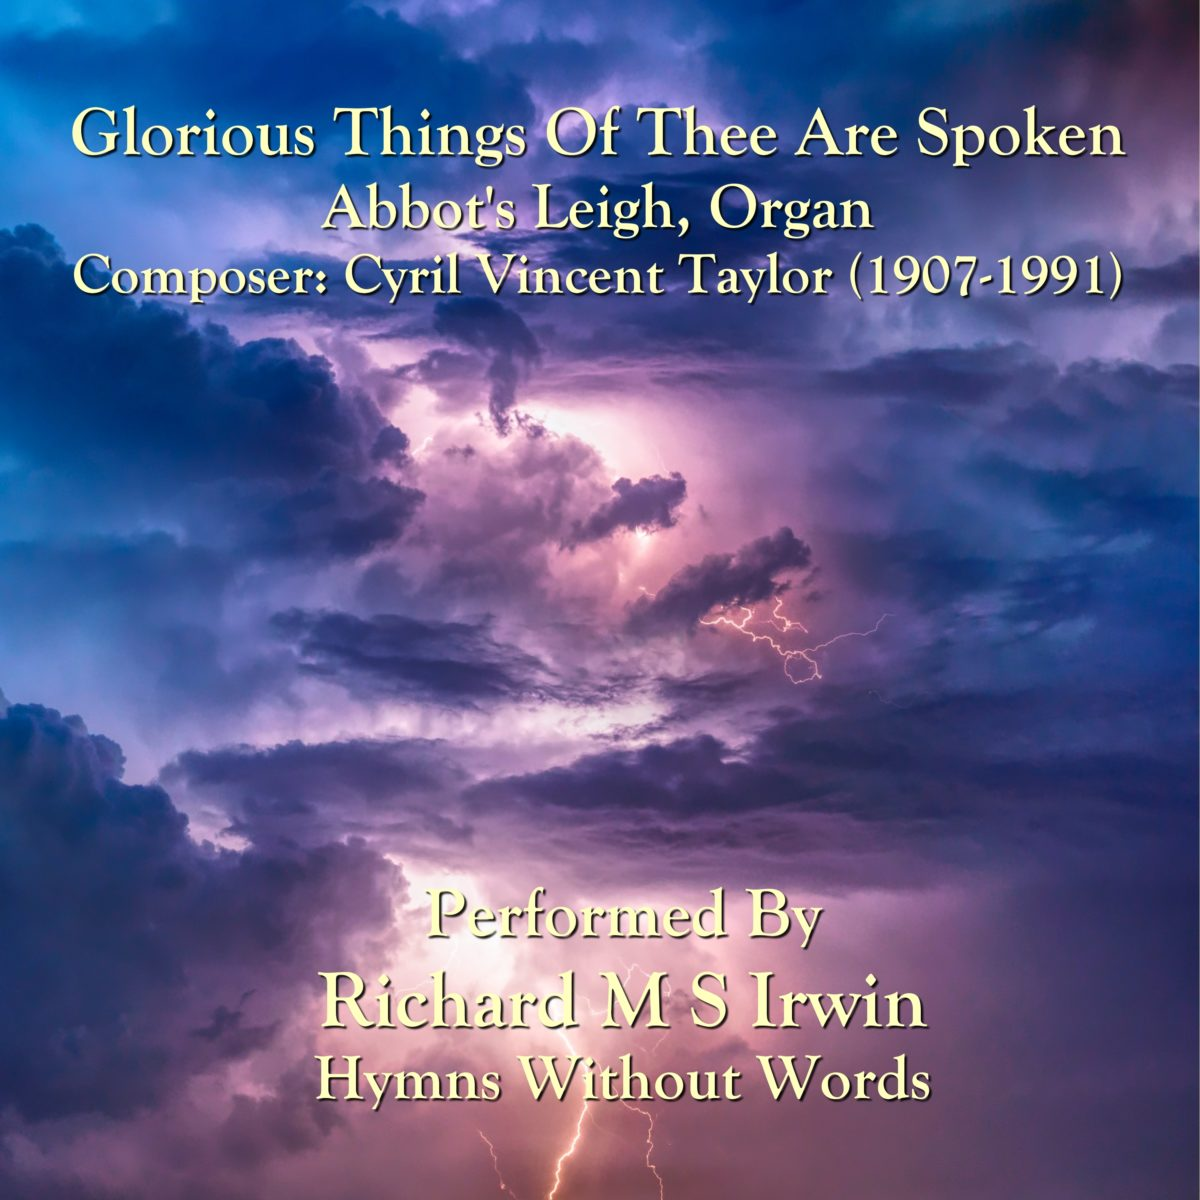 Glorious Things Of Thee Are Spoken (Abbot's Leigh, Organ, 4 Verses)